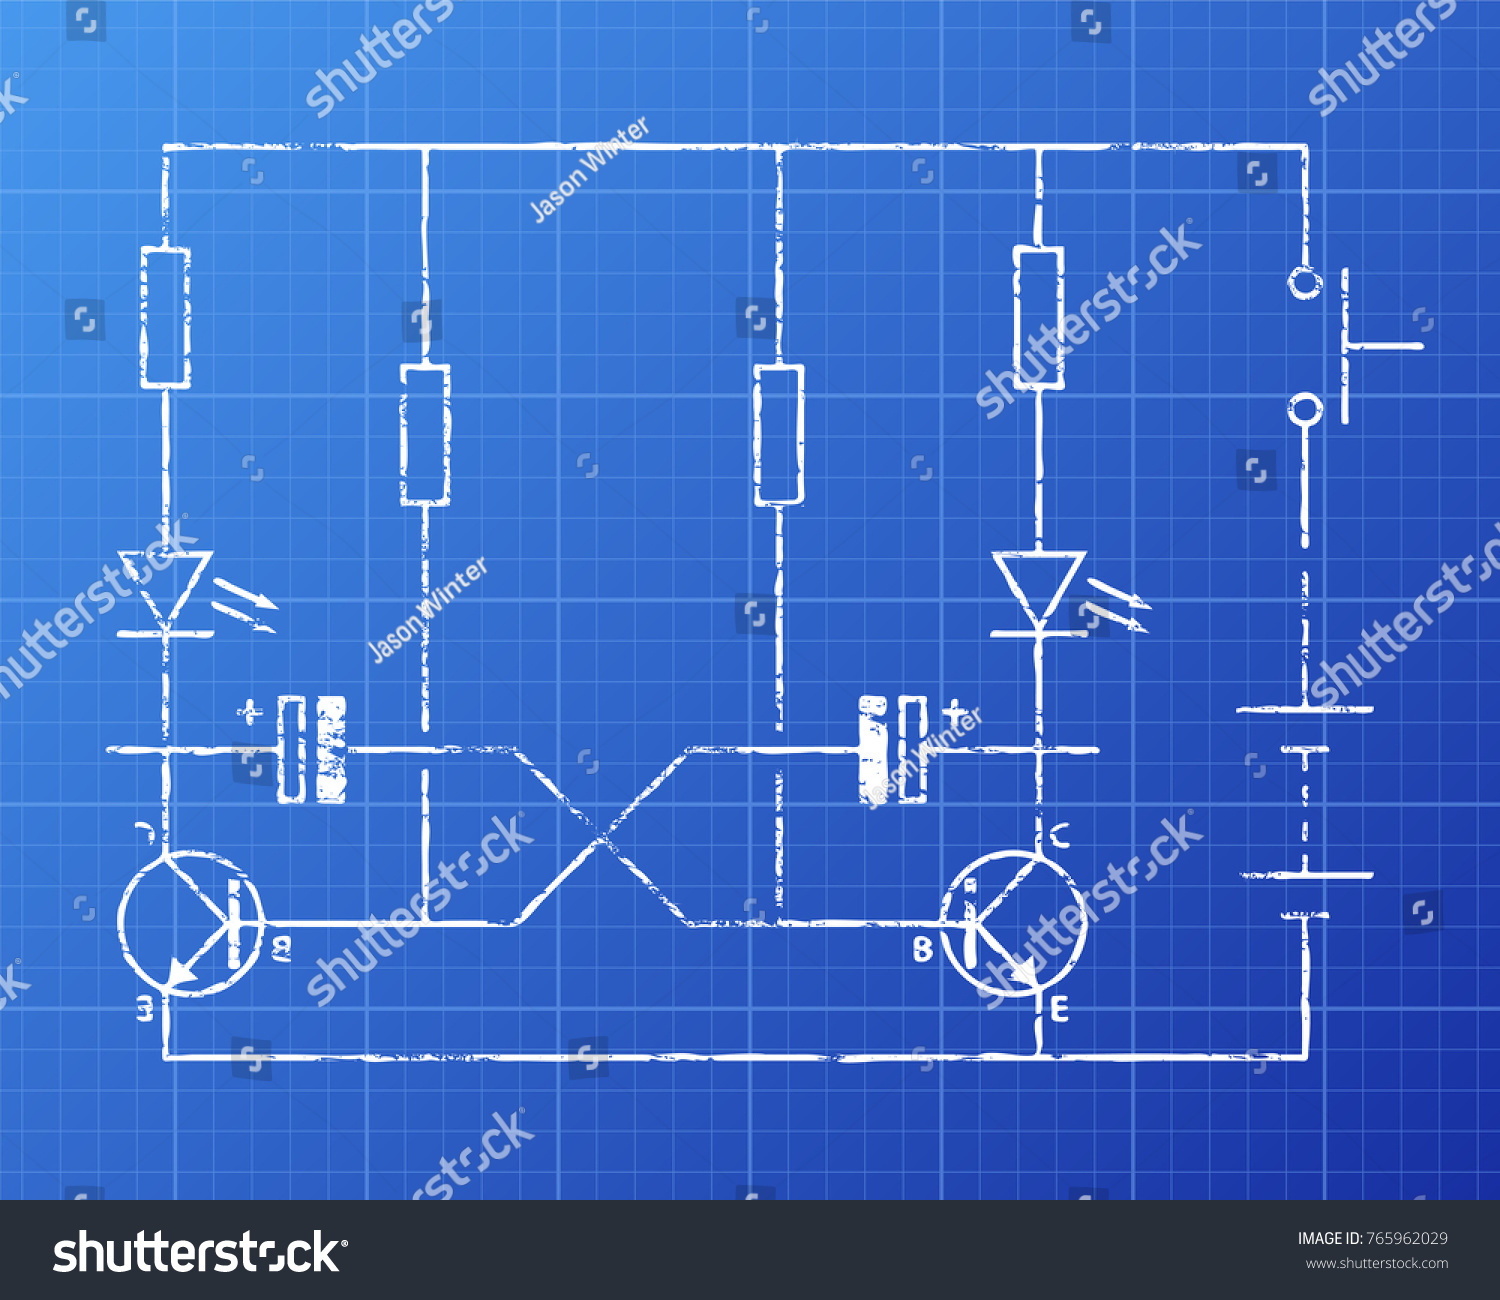 Simple Flip Flop Circuit Hand Drawn Stock Illustration 765962029 Diagram On Blueprint Background